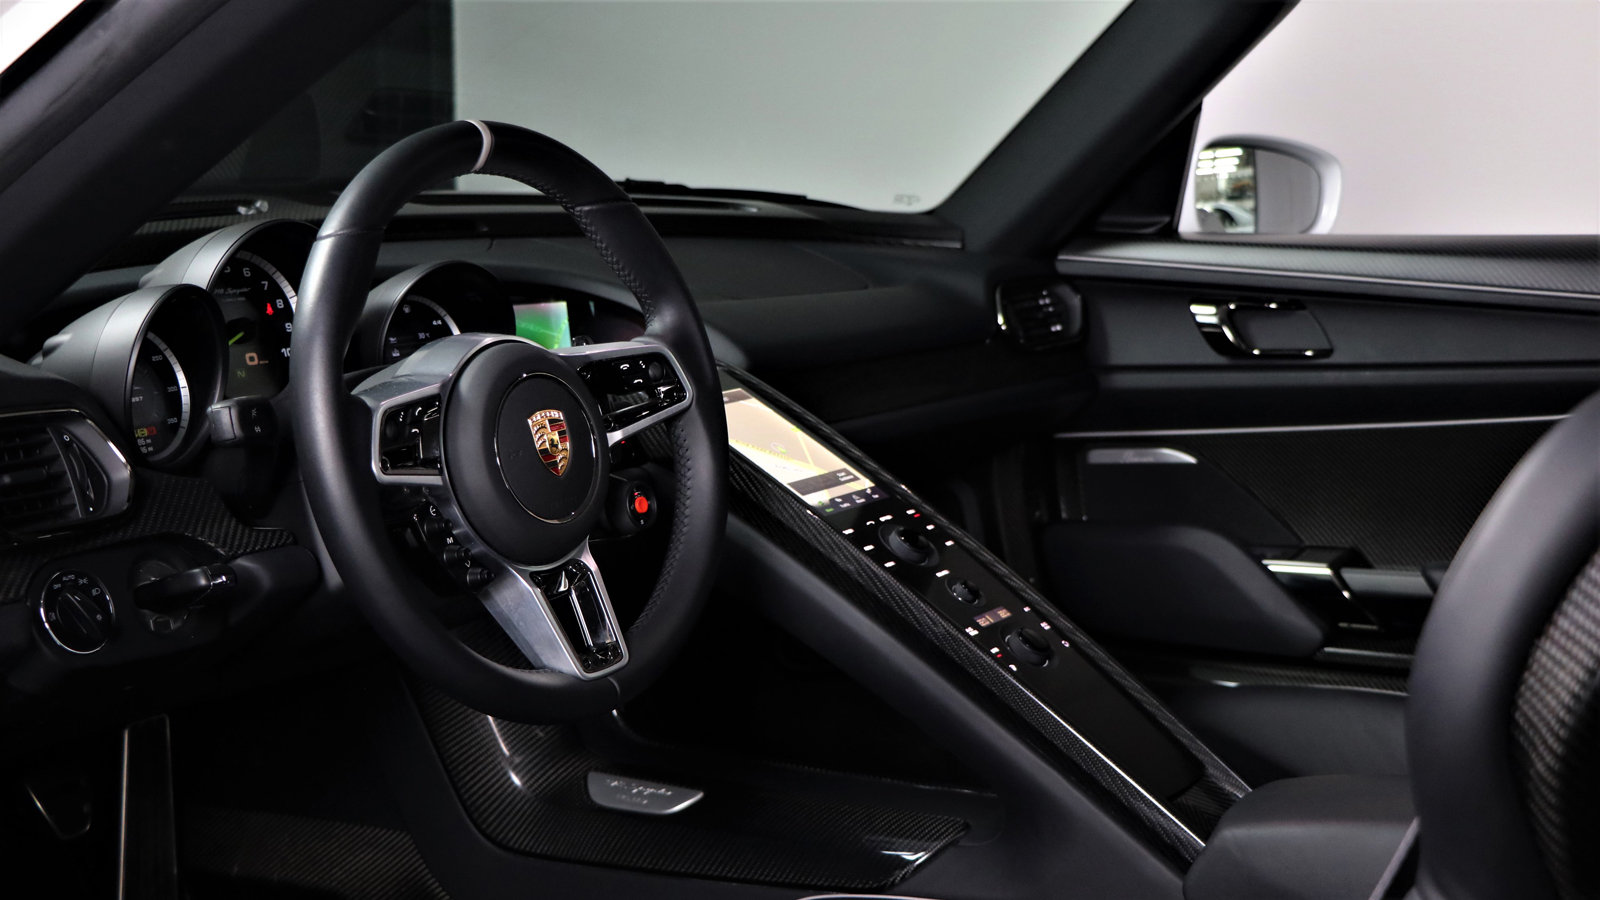 2015 Porsche 918 Spyder 2dr PDK For Sale (picture 5 of 6)